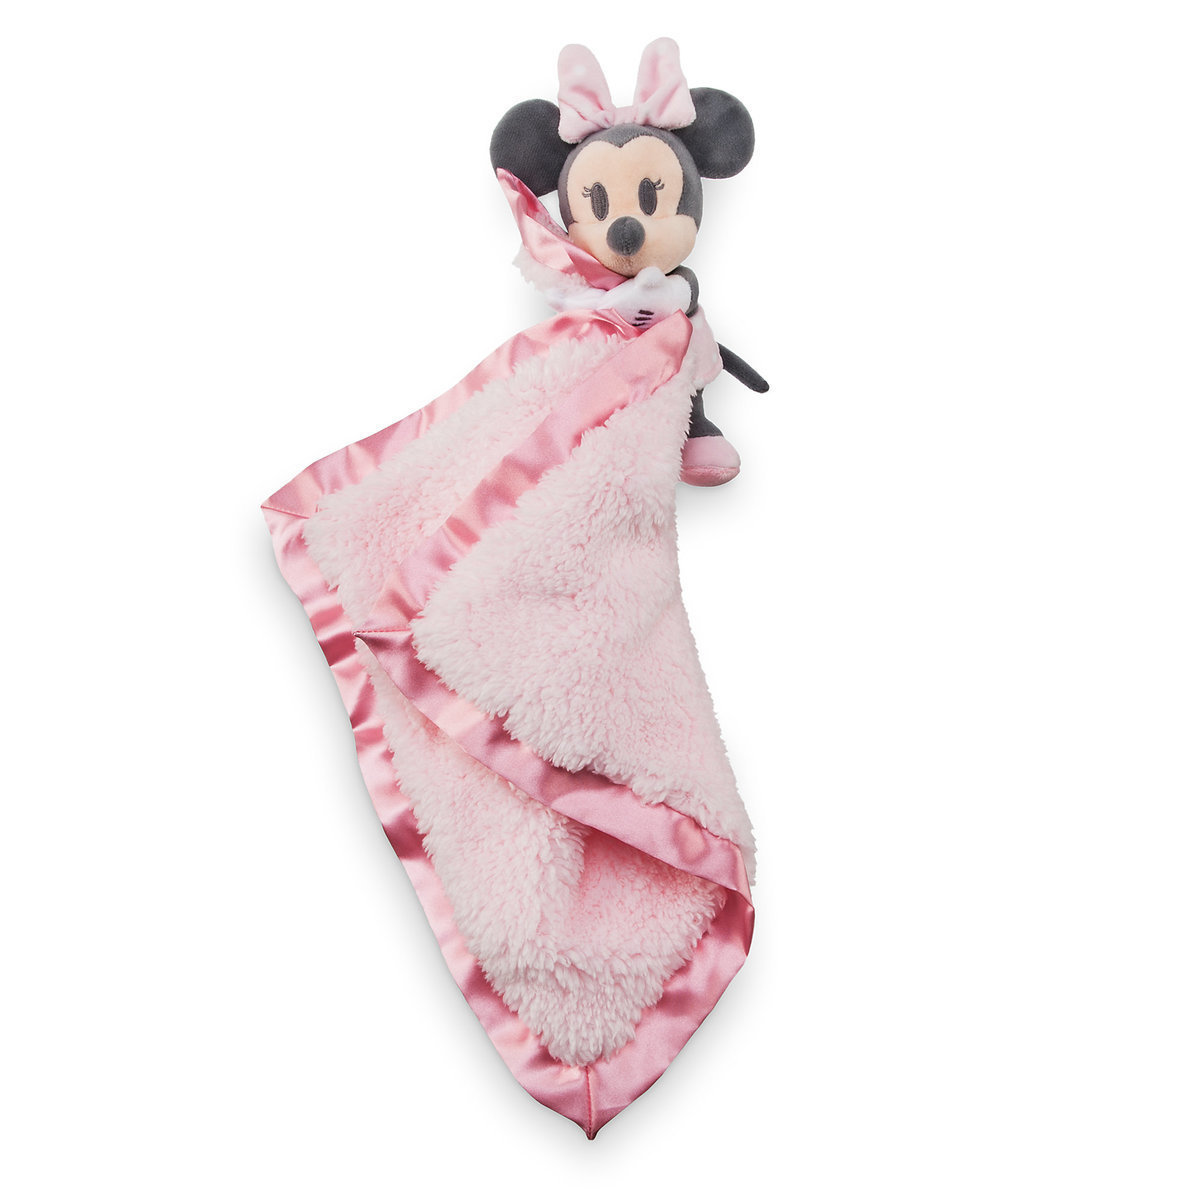 ◎送料込み◎  Minnie Mouse Plush Layette Blanket - Baby